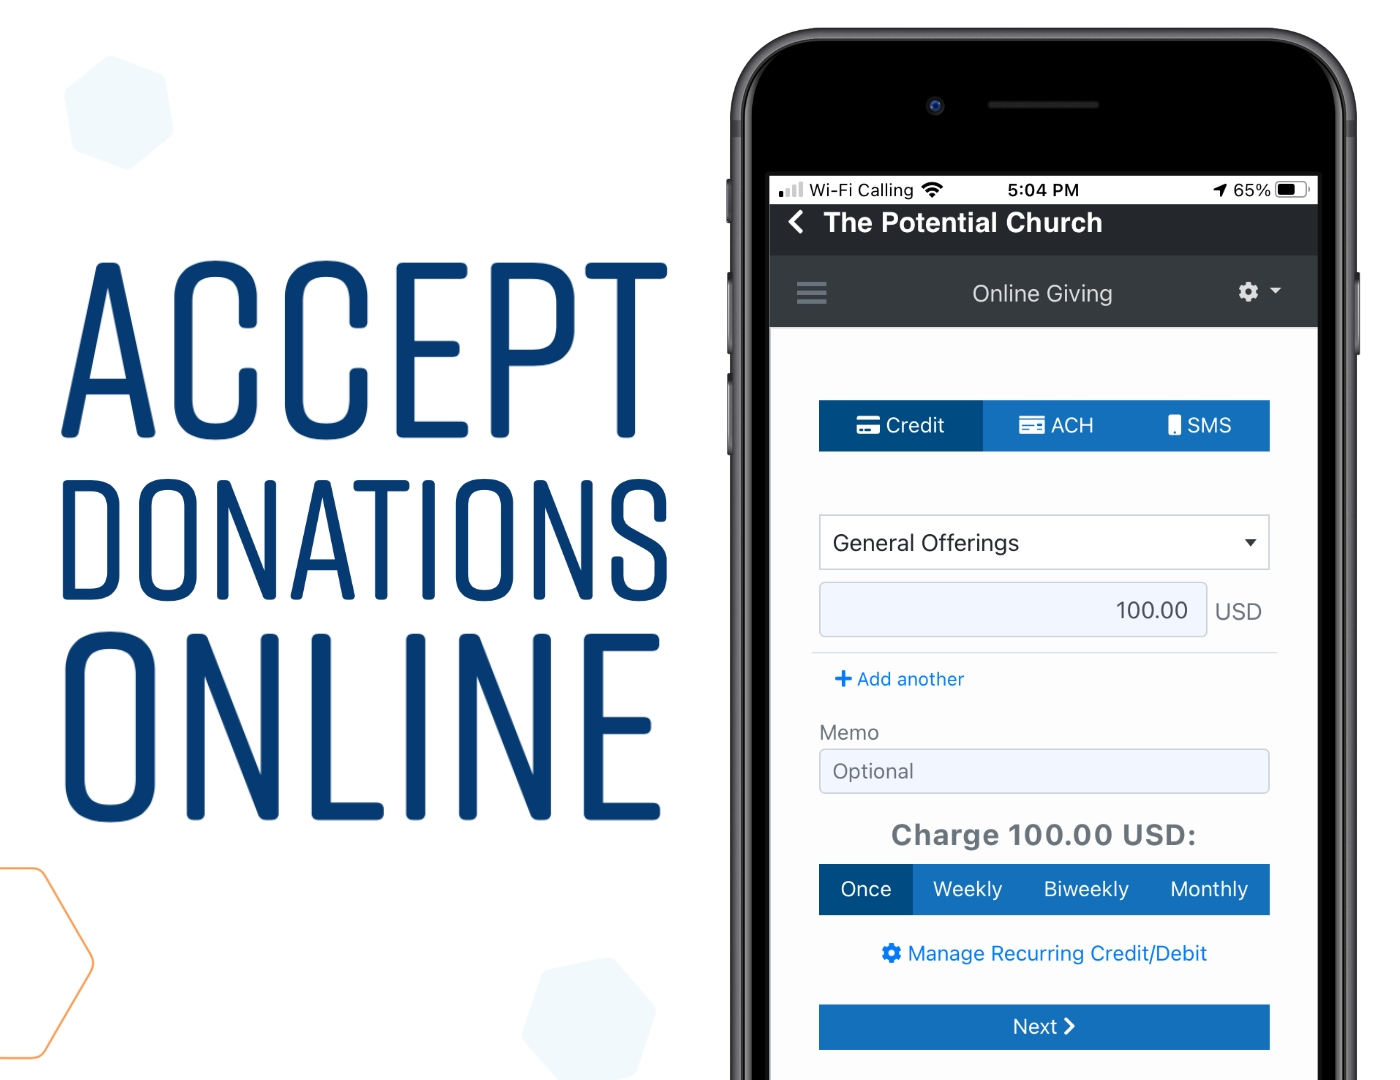 Accept Donations Online